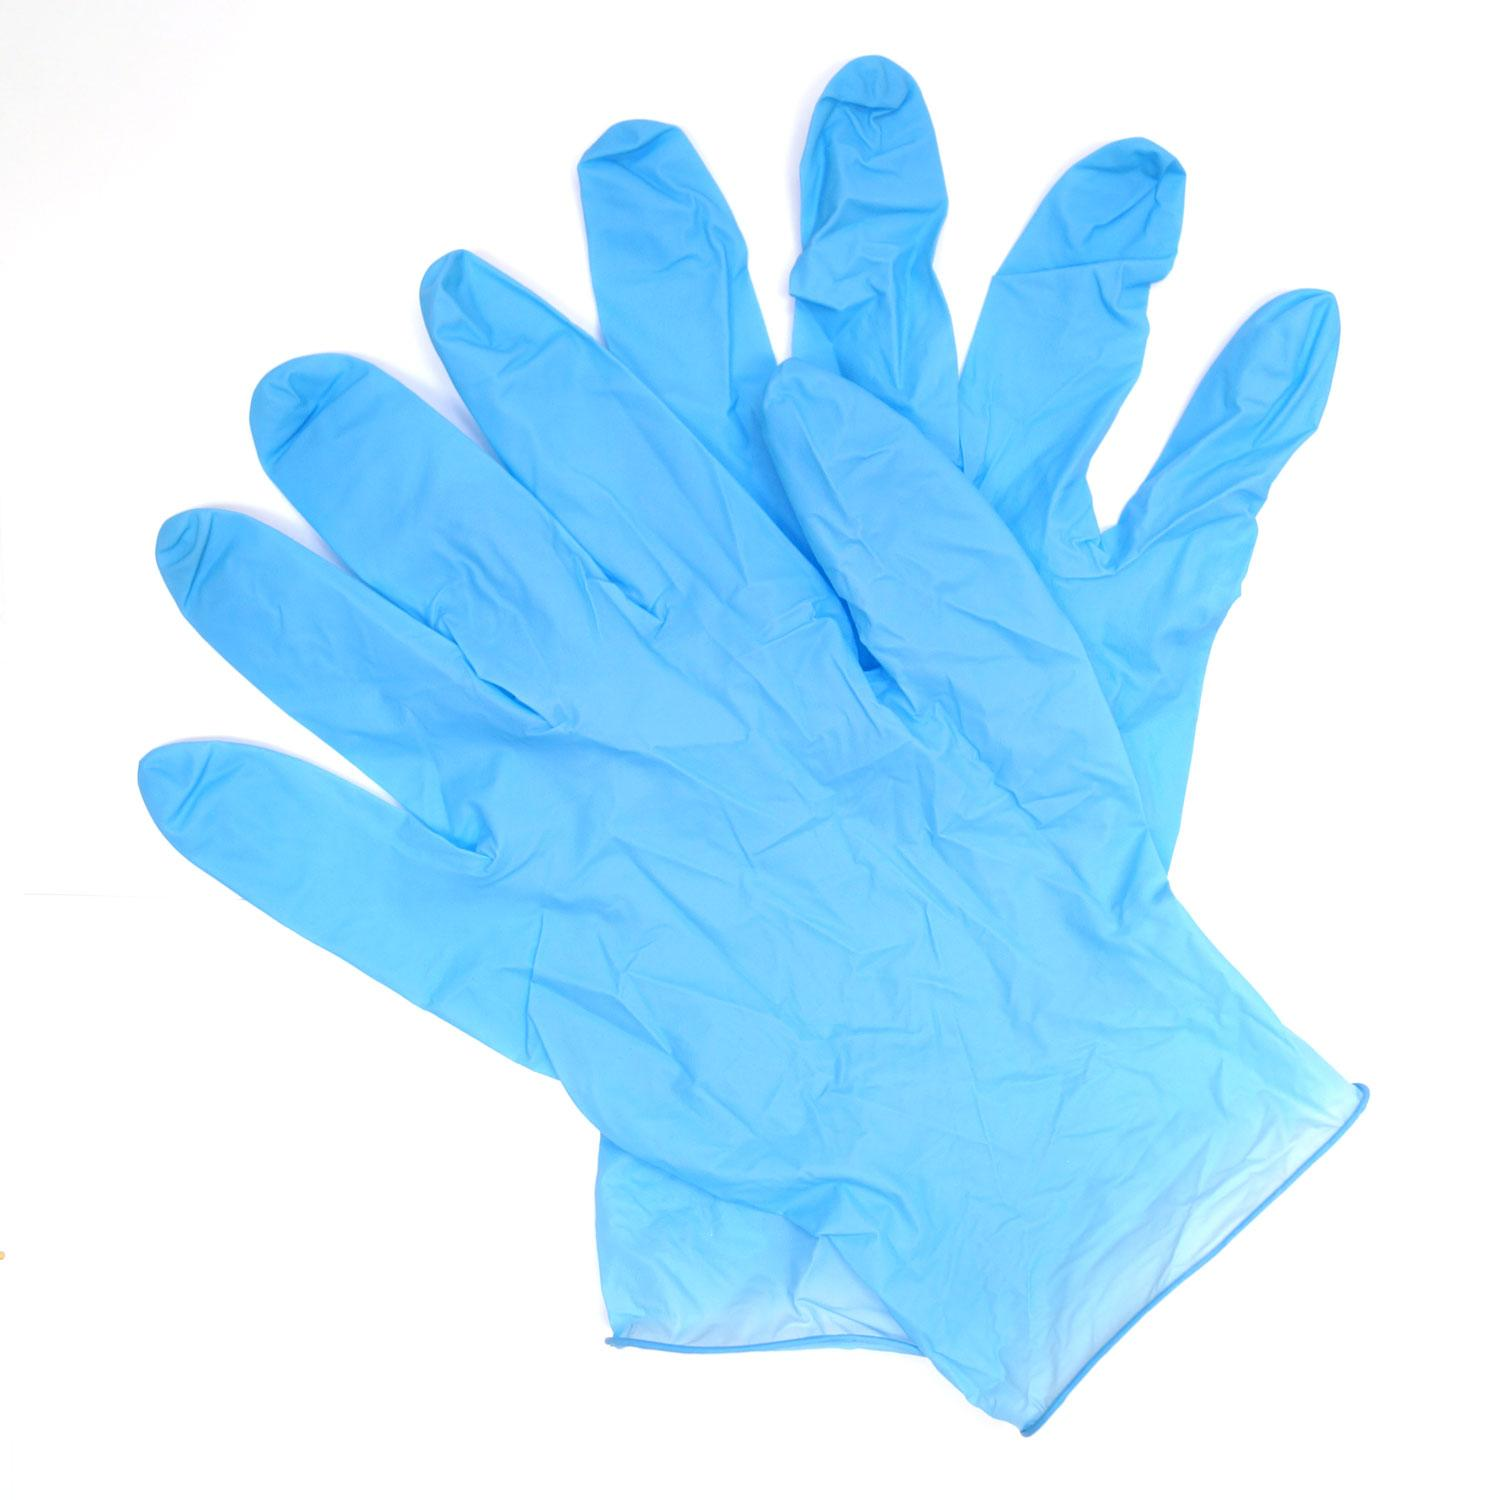 Nitrile Gloves - 100 Gloves Per Box